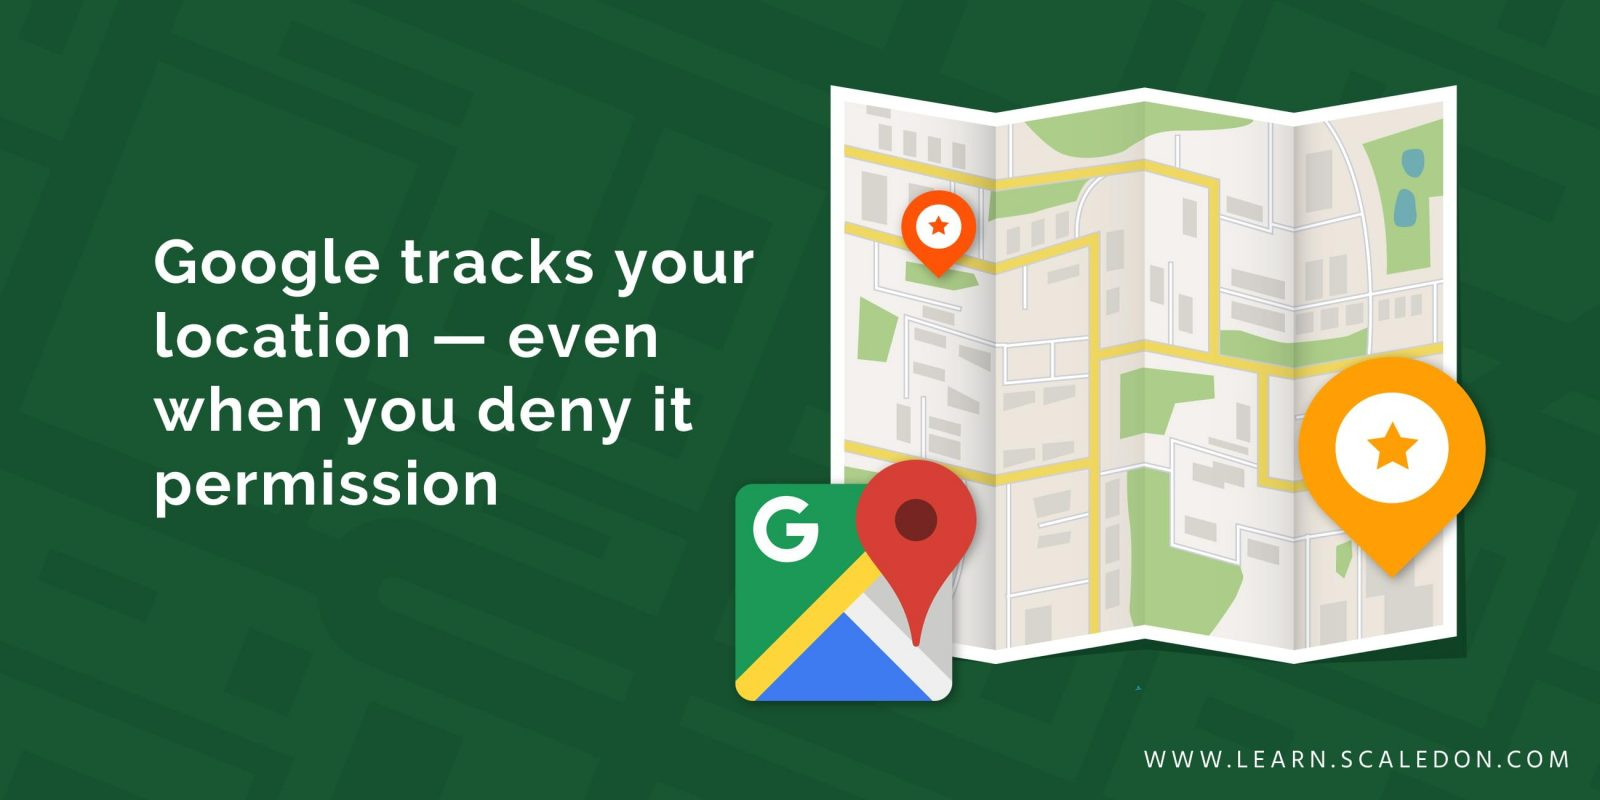 Google tracks your location